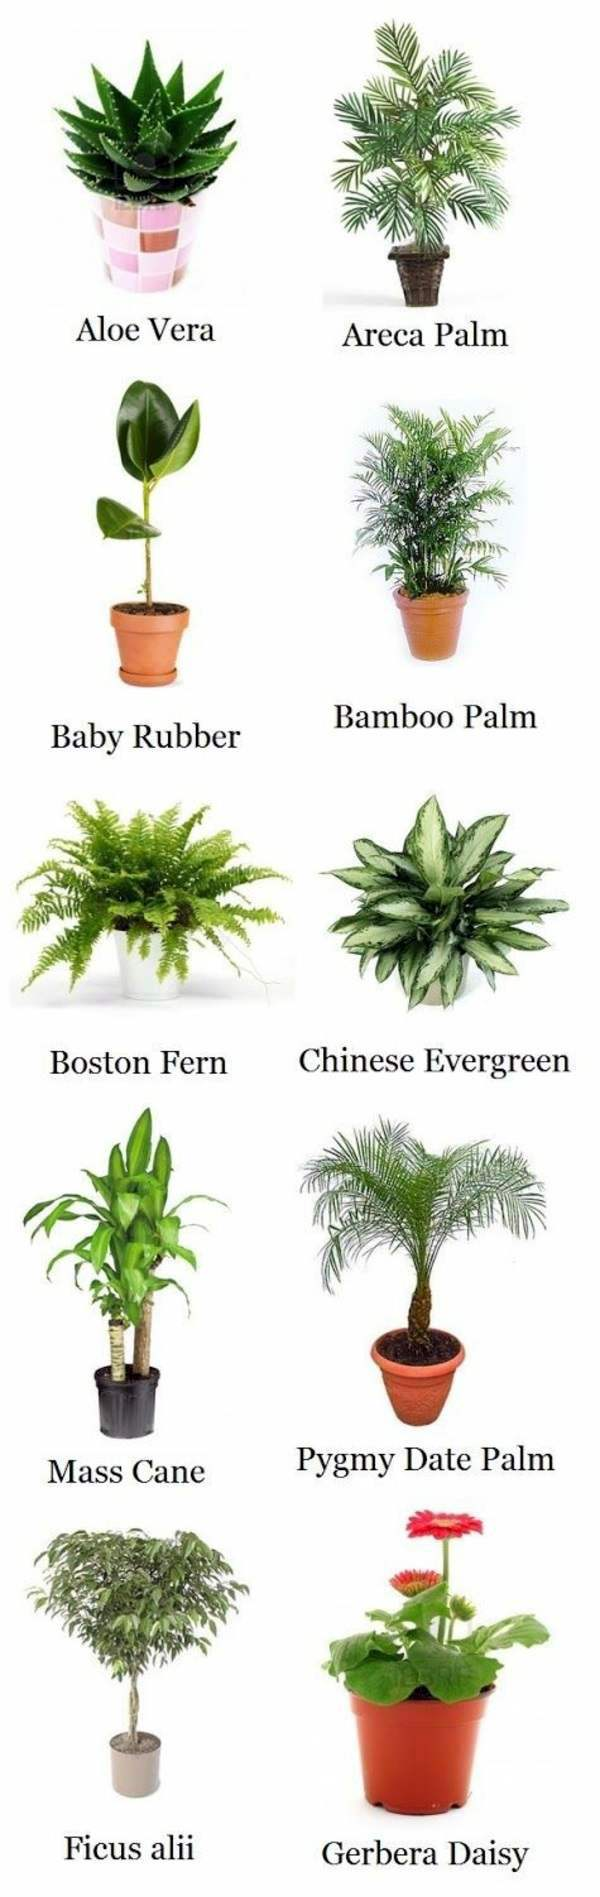 Palm species houseplants – Rhapis excelsa is one of the most ... on palm indoor seeds, palm trees, palm flowers, palm shrubs,